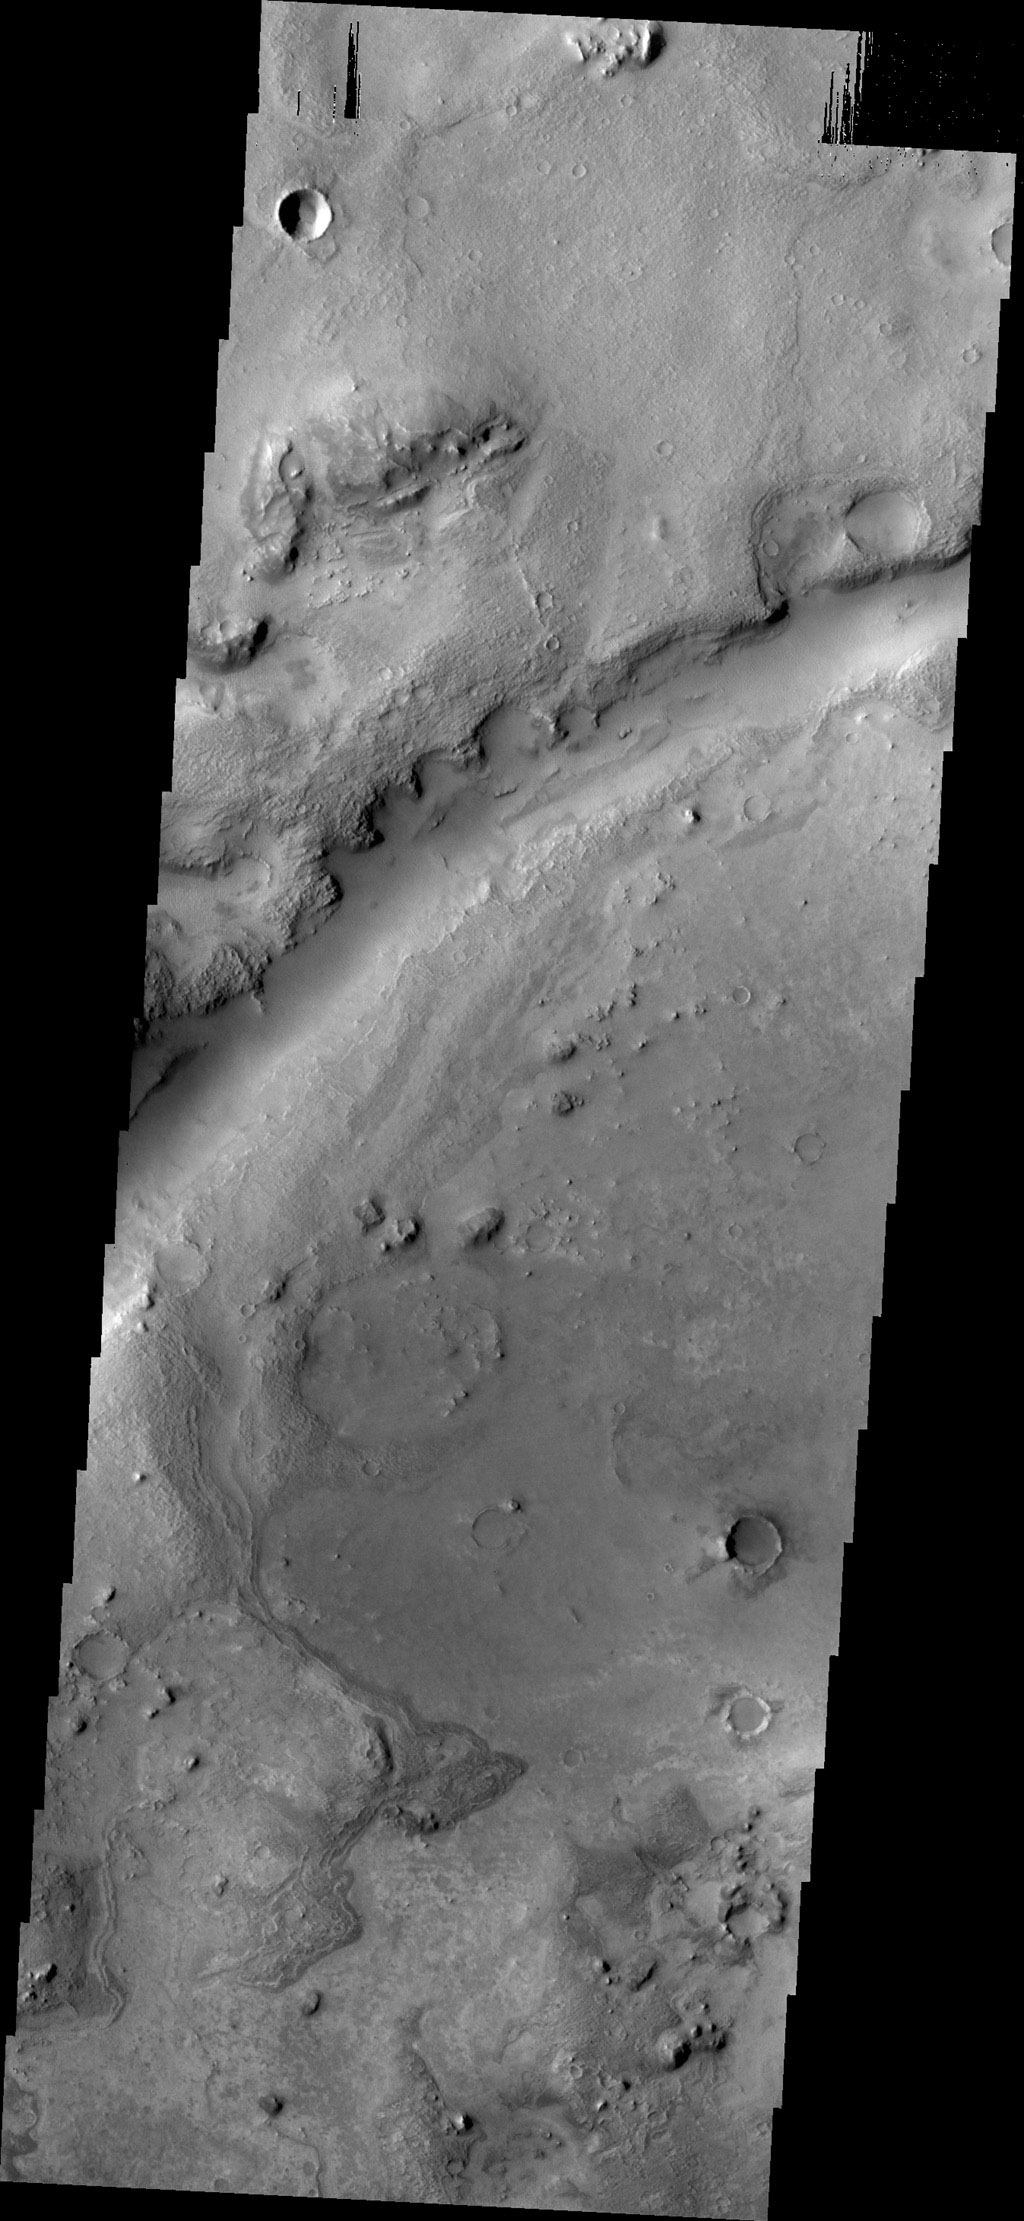 What appears to be a channel in this image captured by NASA's 2001 Mars Odyssey spacecraft is actually one of the fractures that make up Nili Fossae.